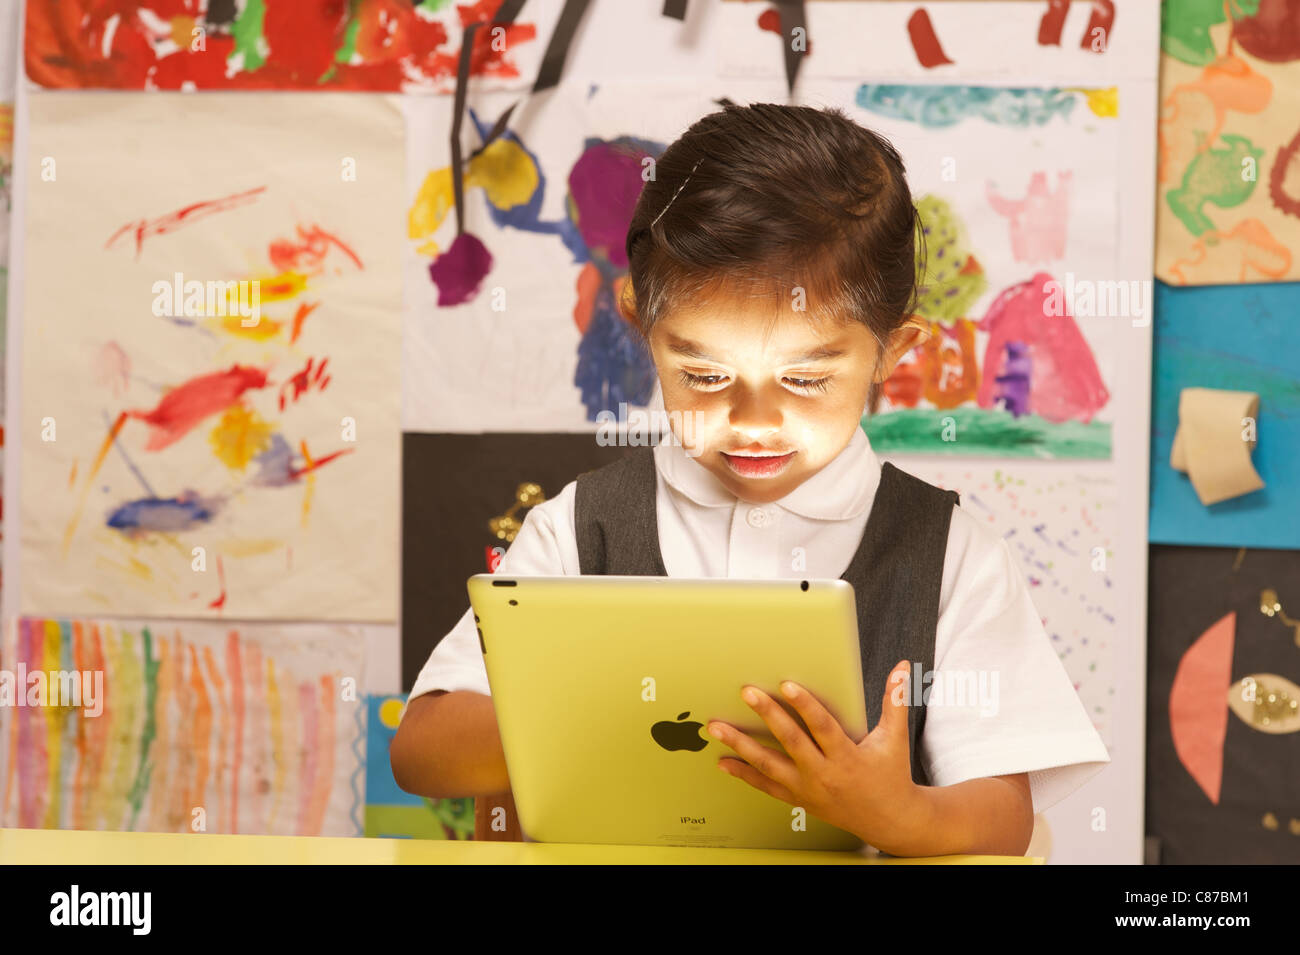 A young girl with ipad 2 - Stock Image